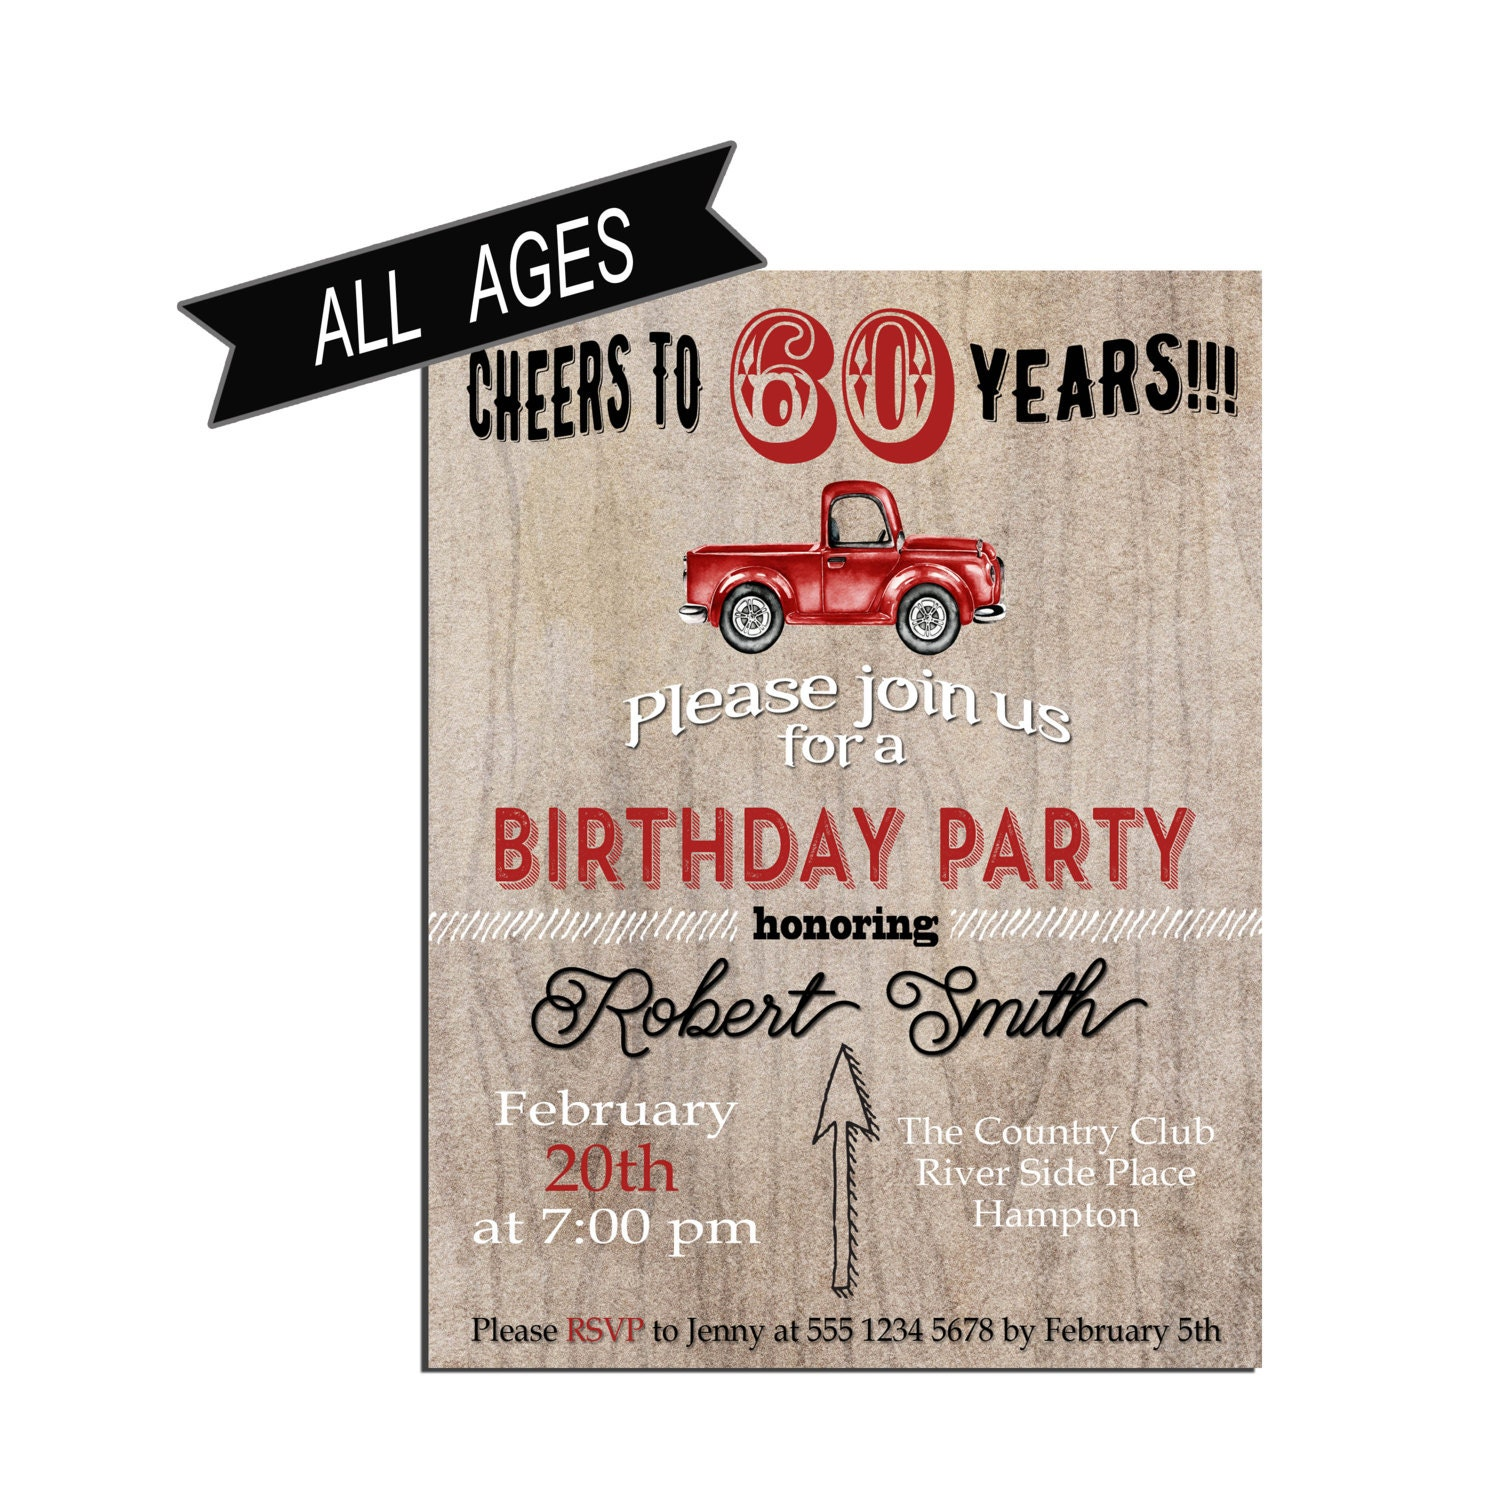 Birthday Invitation for men 60th Birthday party Invitation | Etsy